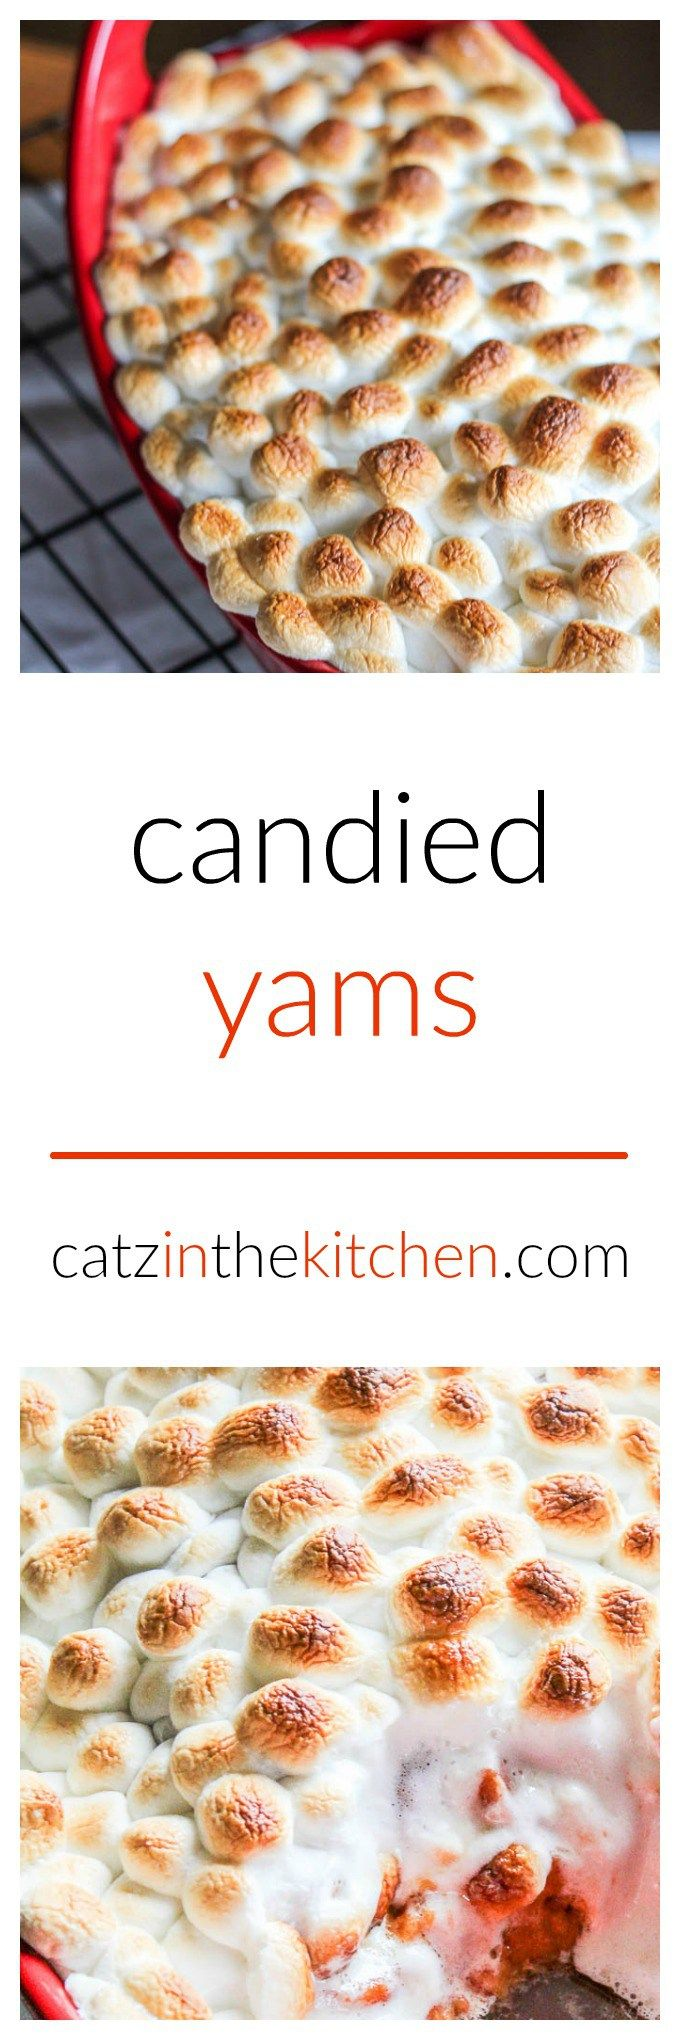 Candied yams | catzinthekitchen.com